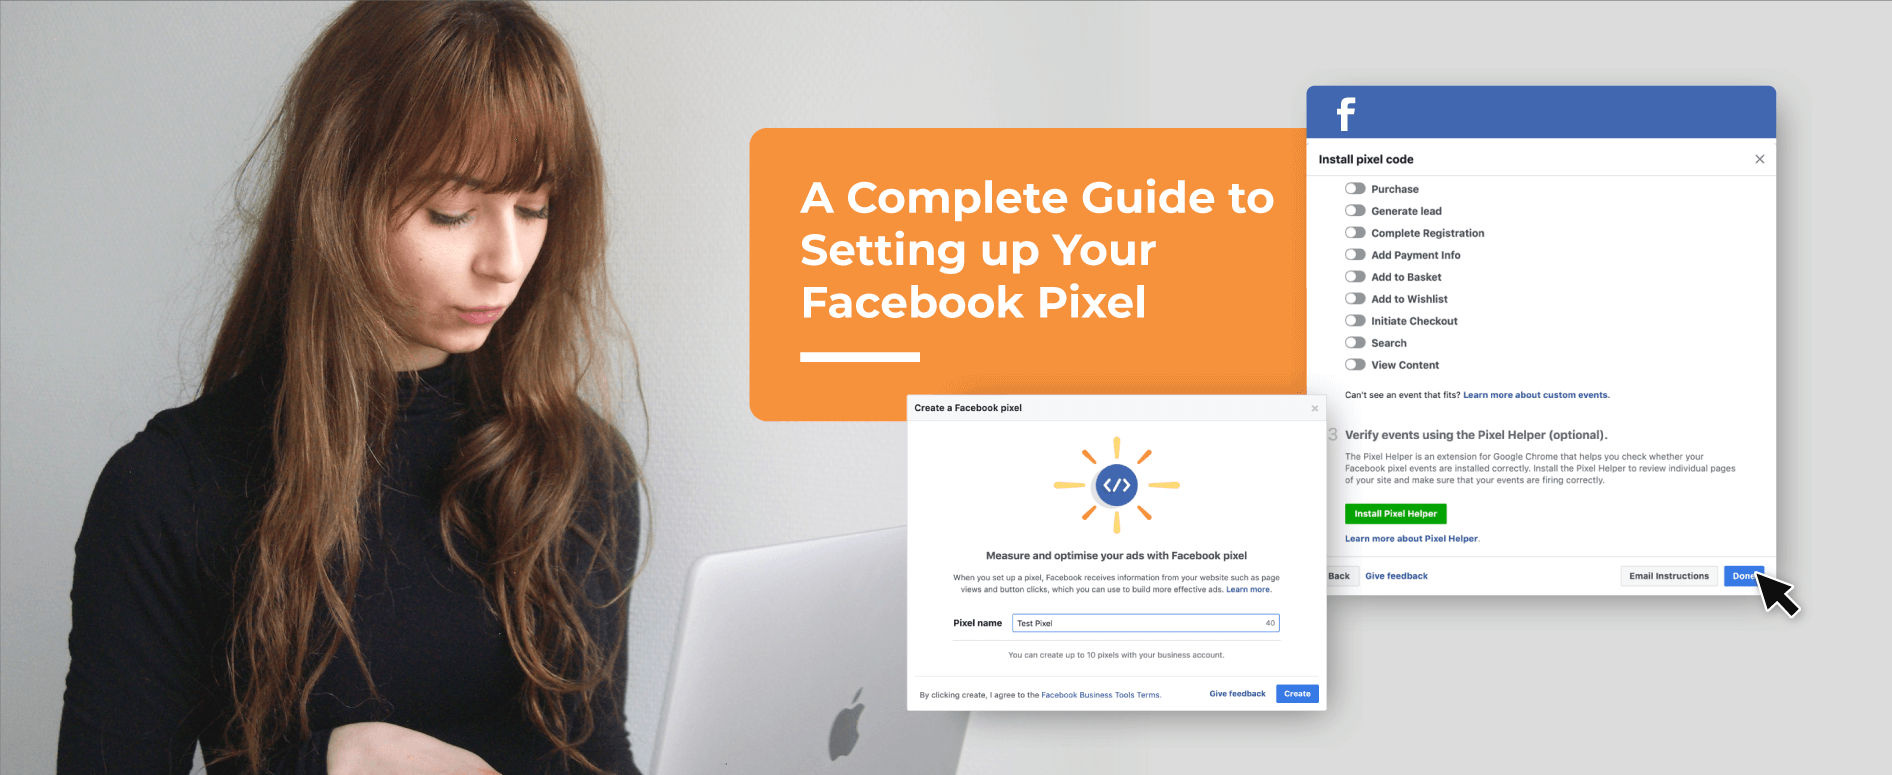 a complete guide to setting up your facebook pixel